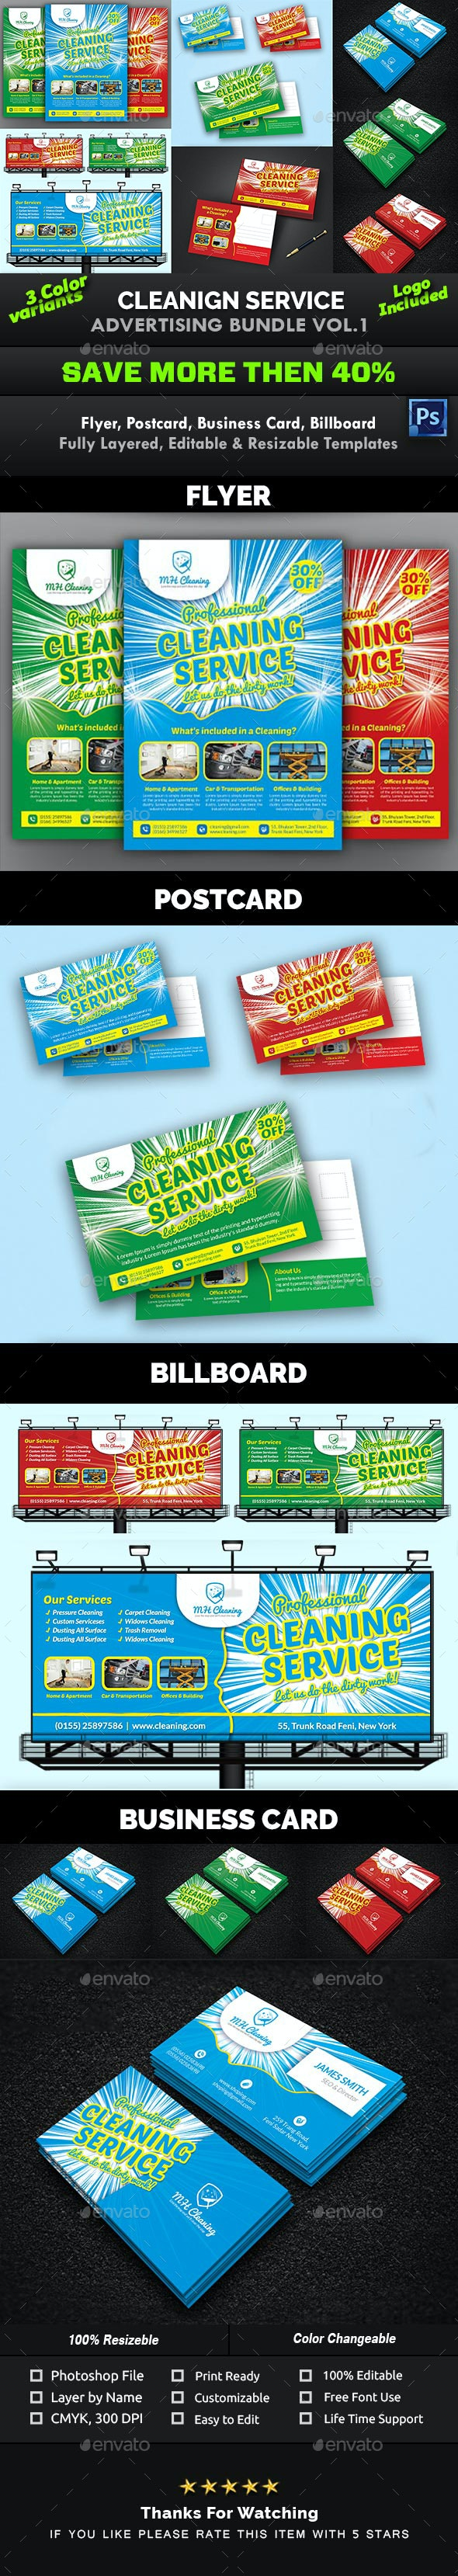 Cleaning Service Advertising Bundle Vol.1 - Print Templates